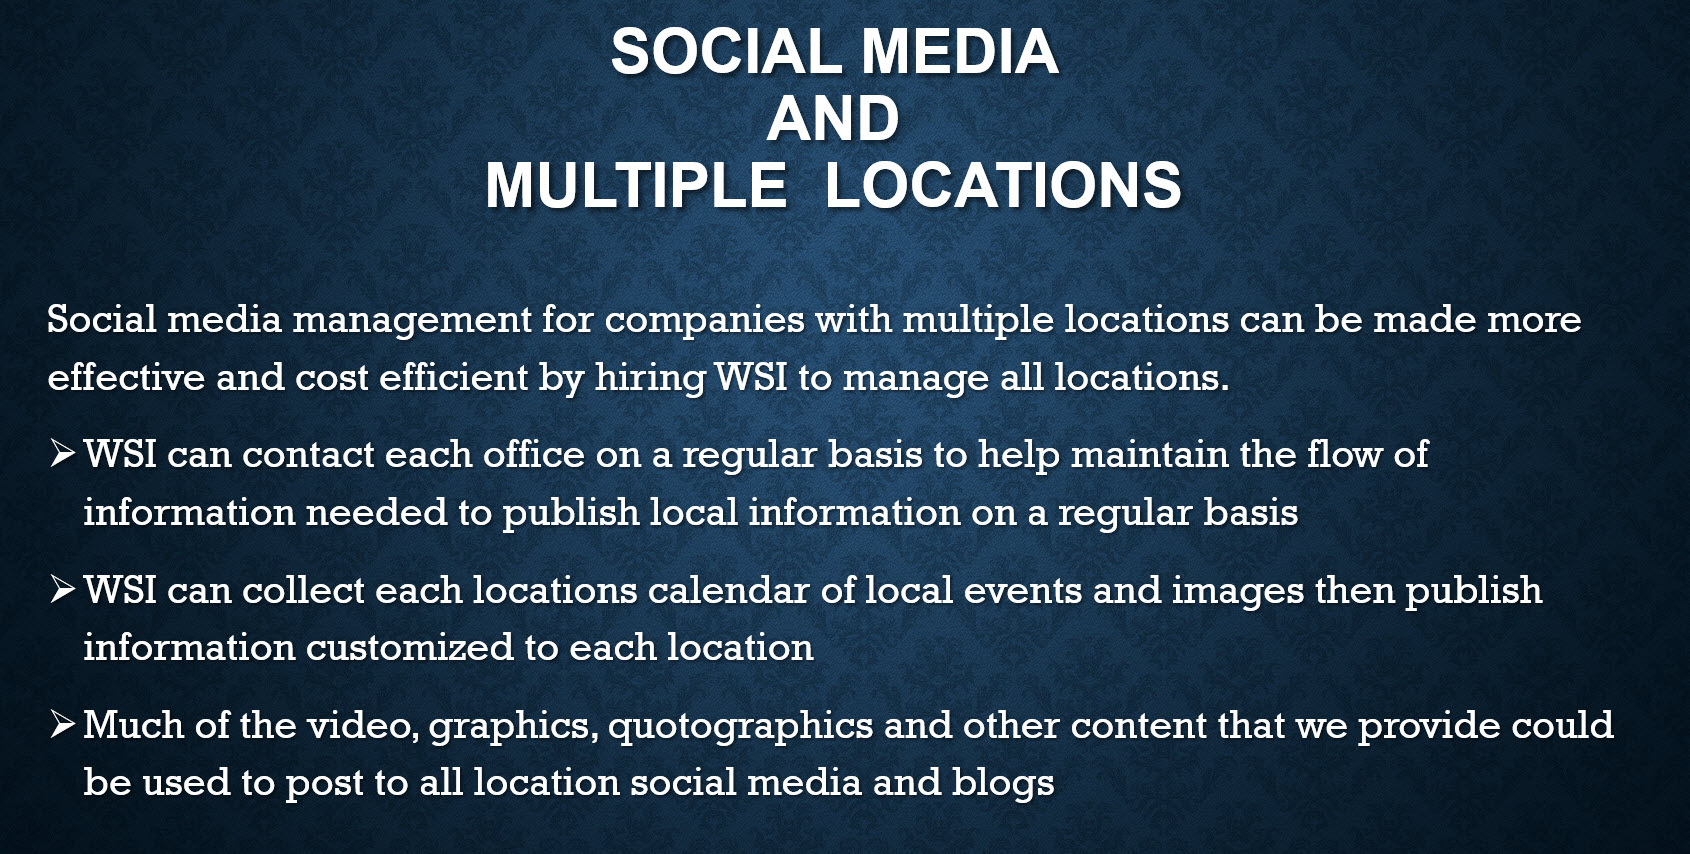 Managing multiple senior living homes and facilities locations with Social Media